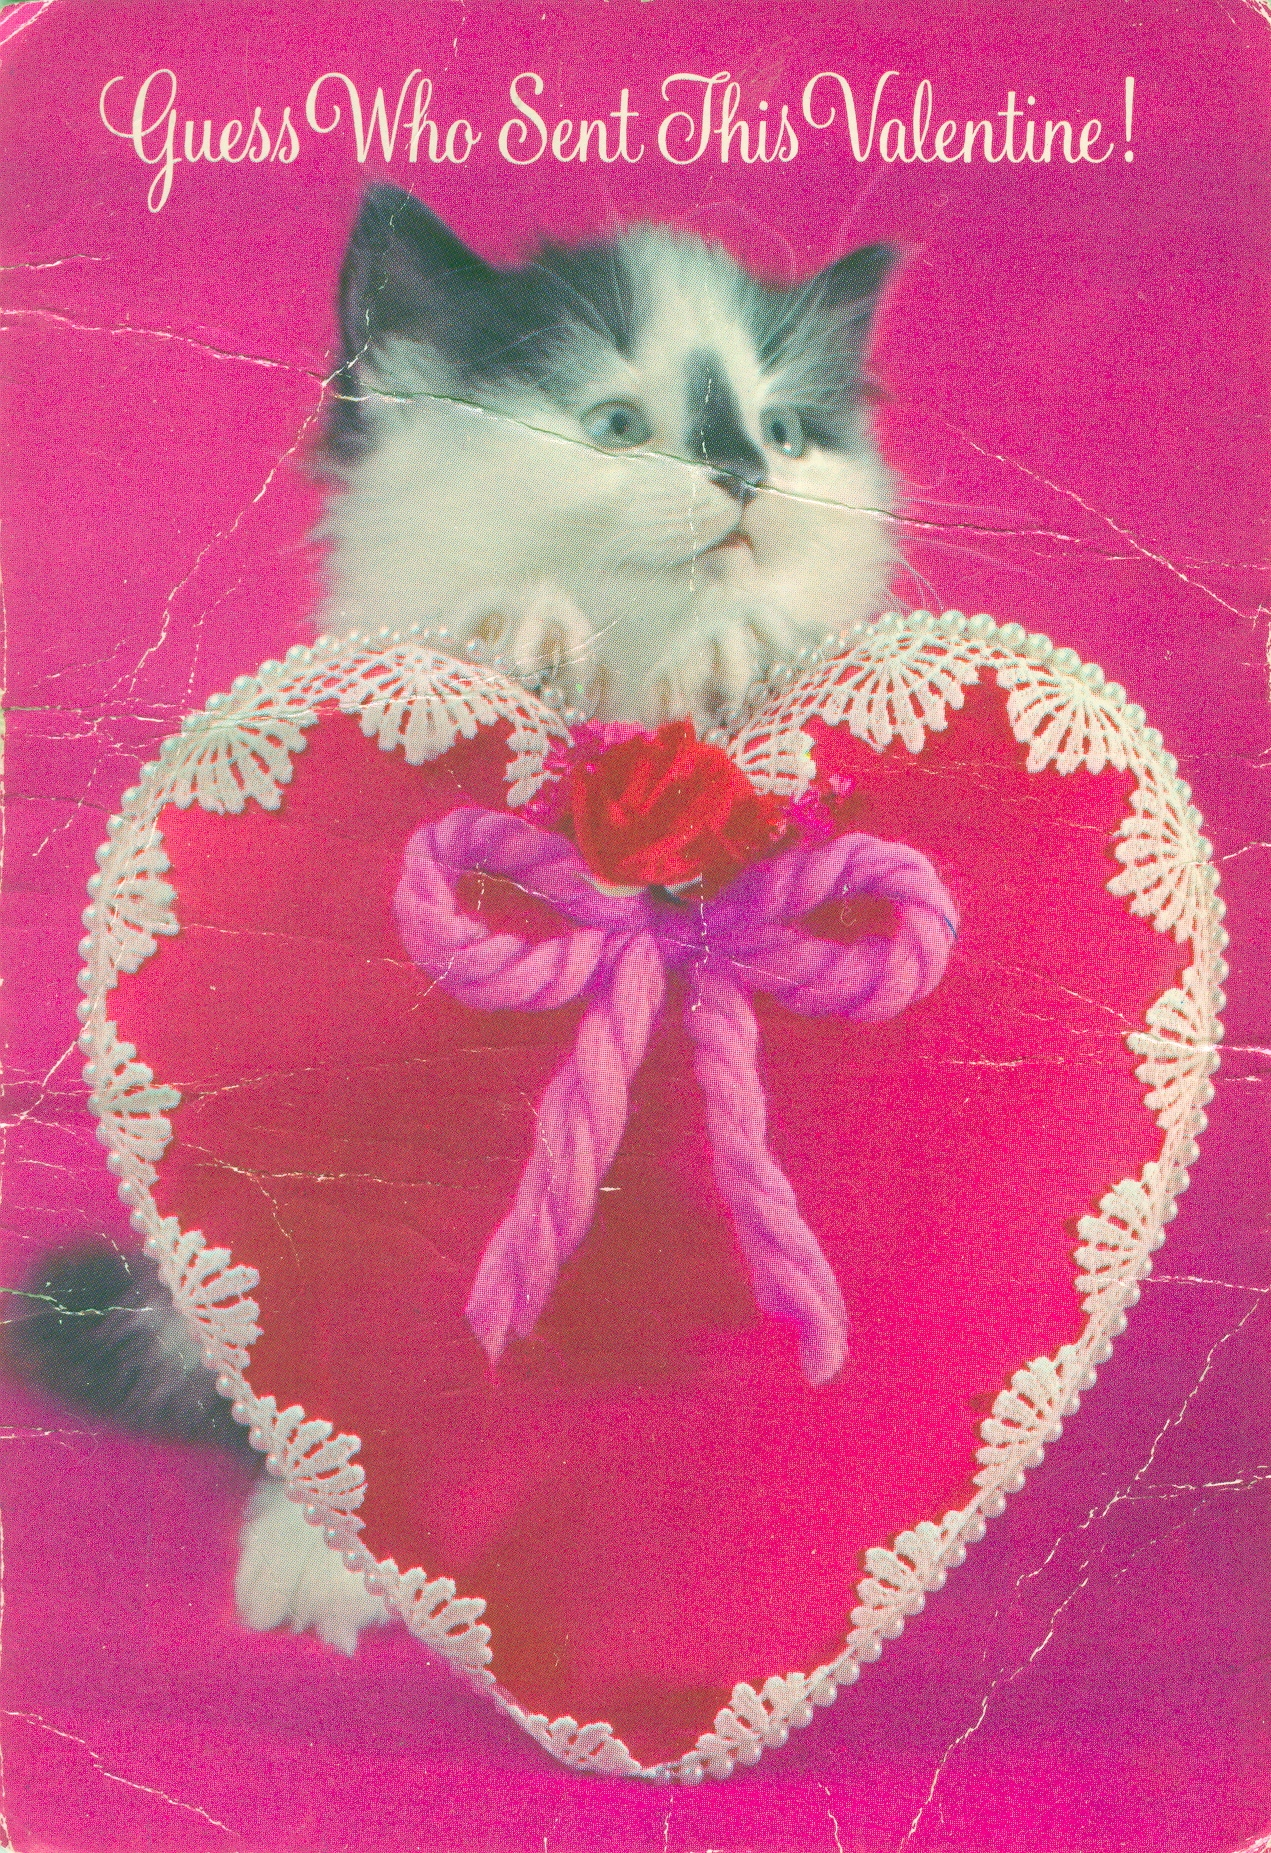 Sweet Kitty Valentine